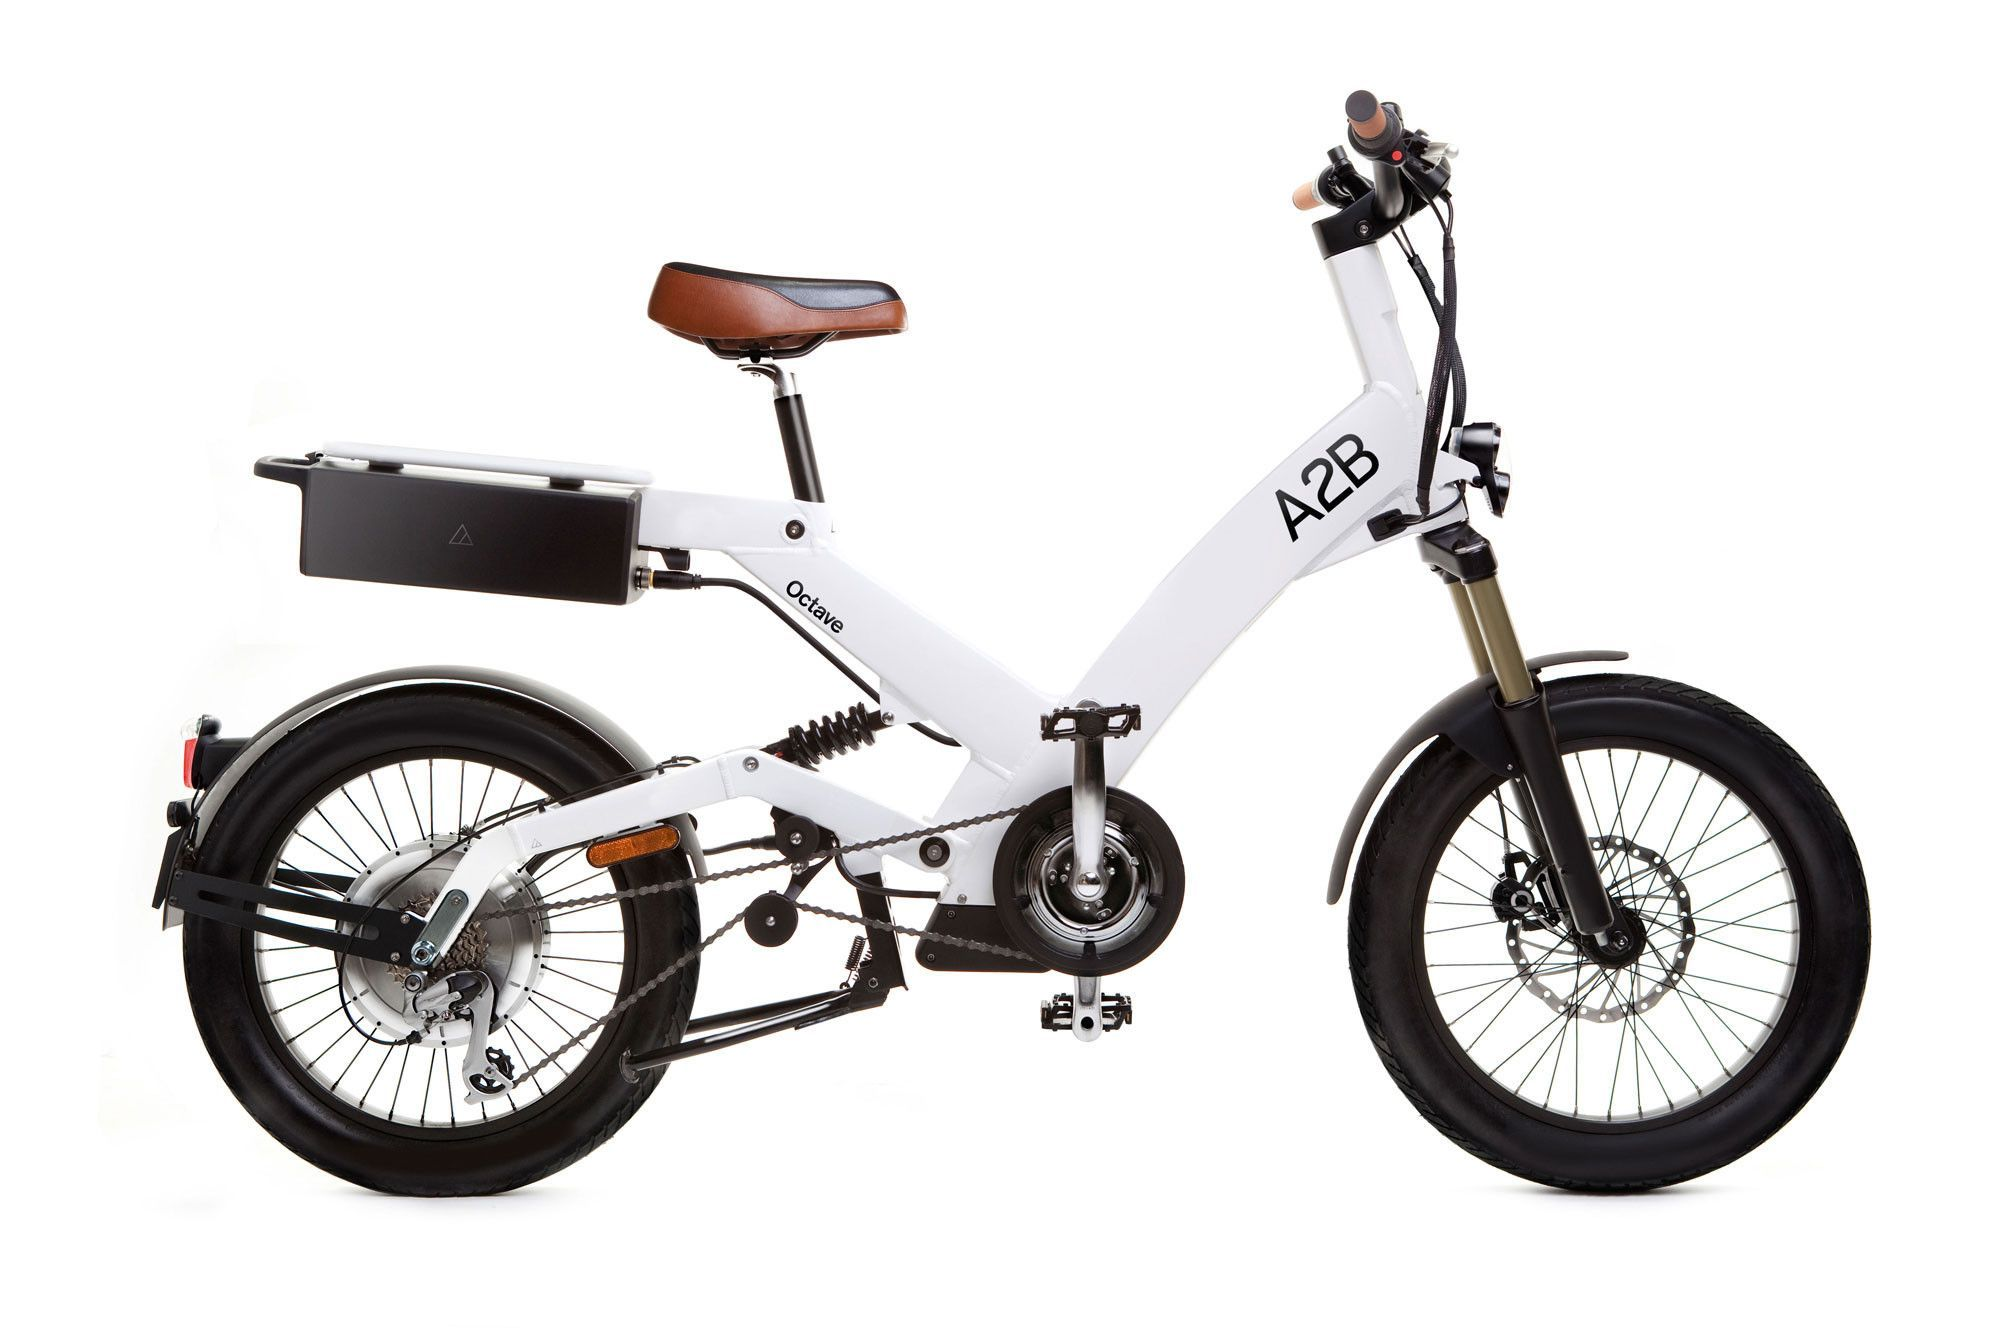 A2b Electric Bike >> The Octave 500w Electric Bicycle By A2b Other Electric